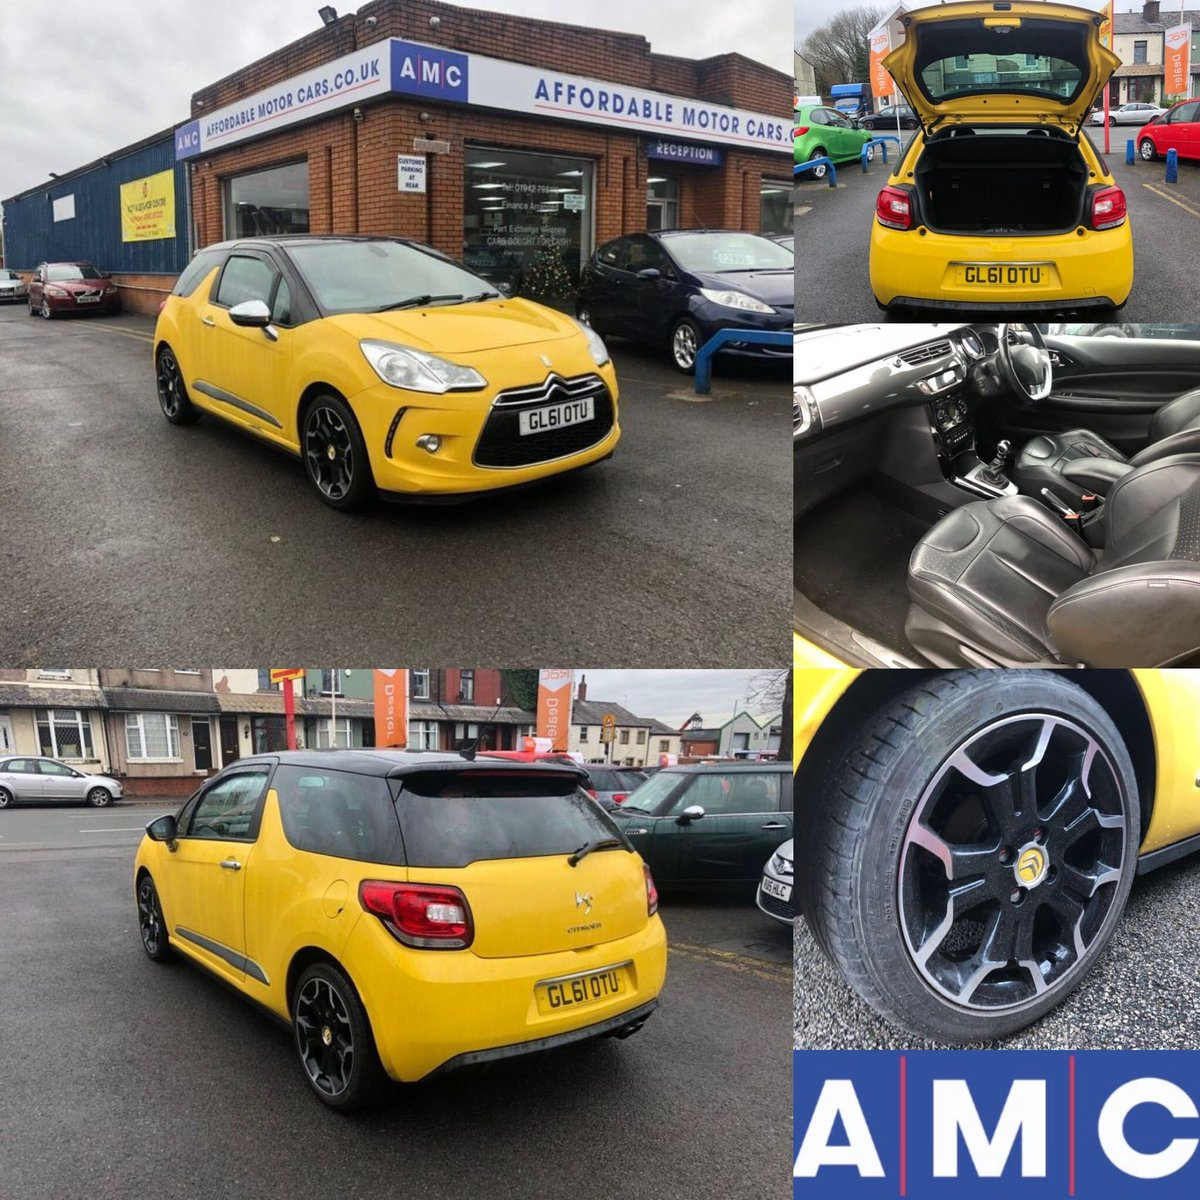 #CarOfTheWeek - Citroen DS3 1.6 THP DSport Plus 3dr Only £4,595!  Low mileage  Alloy Wheels  12 months MOT Drive away todayhttps://www.autotrader.co.uk/classified/advert/201912045024289?advert-type=dealer-stock&fromDealerProfile=true&dpp=10020391&advertising-location=at_cars…pic.twitter.com/HEdFAhQZpc